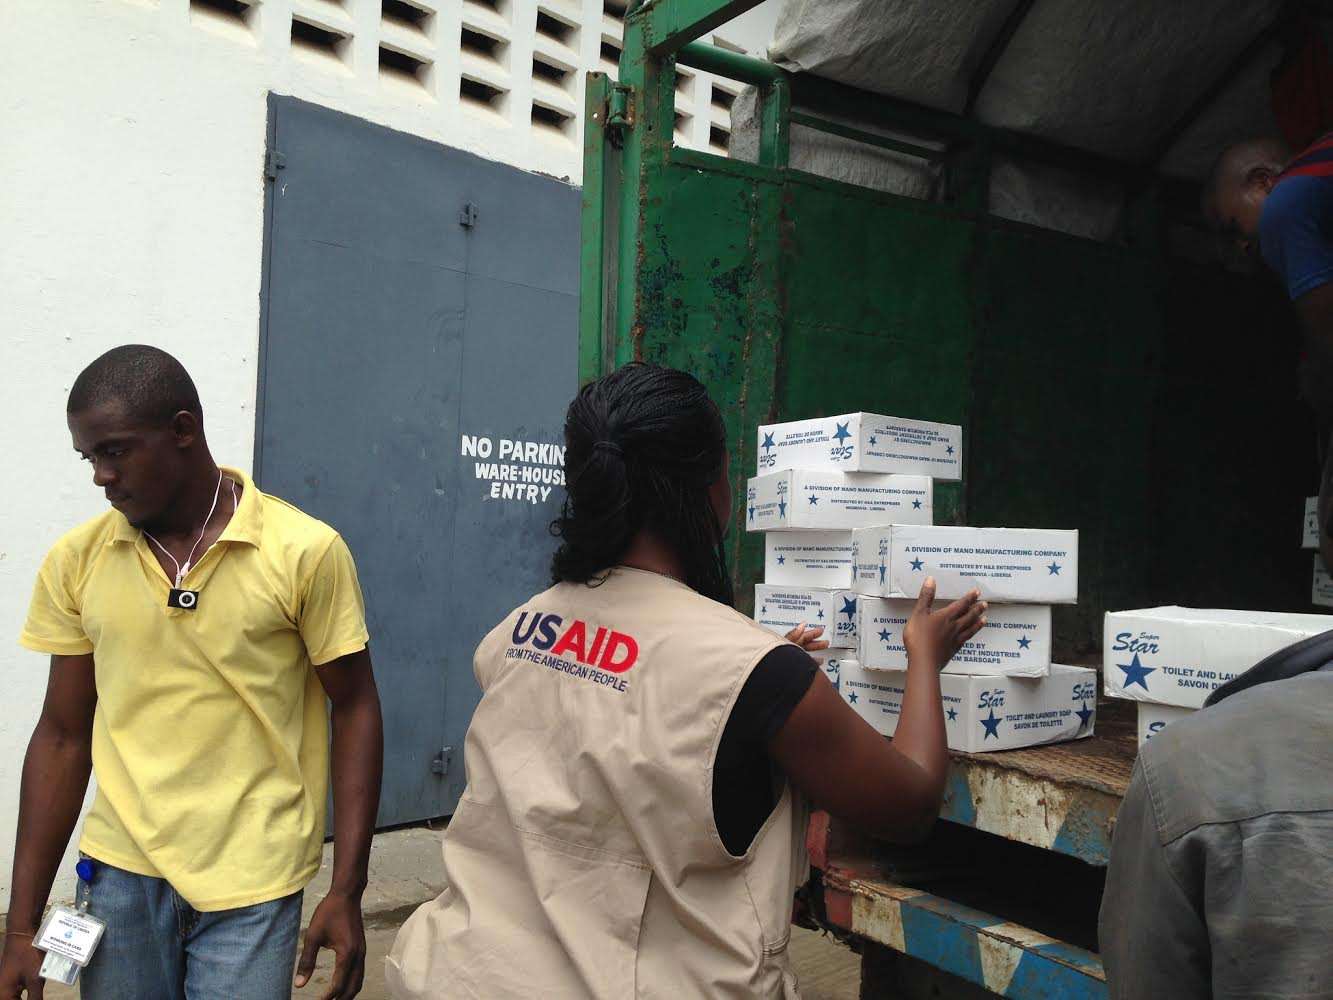 Members of the USAID-led Disaster Assistance Response Team (DART) procure and unload urgent Ebola relief supplies and hygiene items in Monrovia, Liberia, on Aug. 27, 2014.